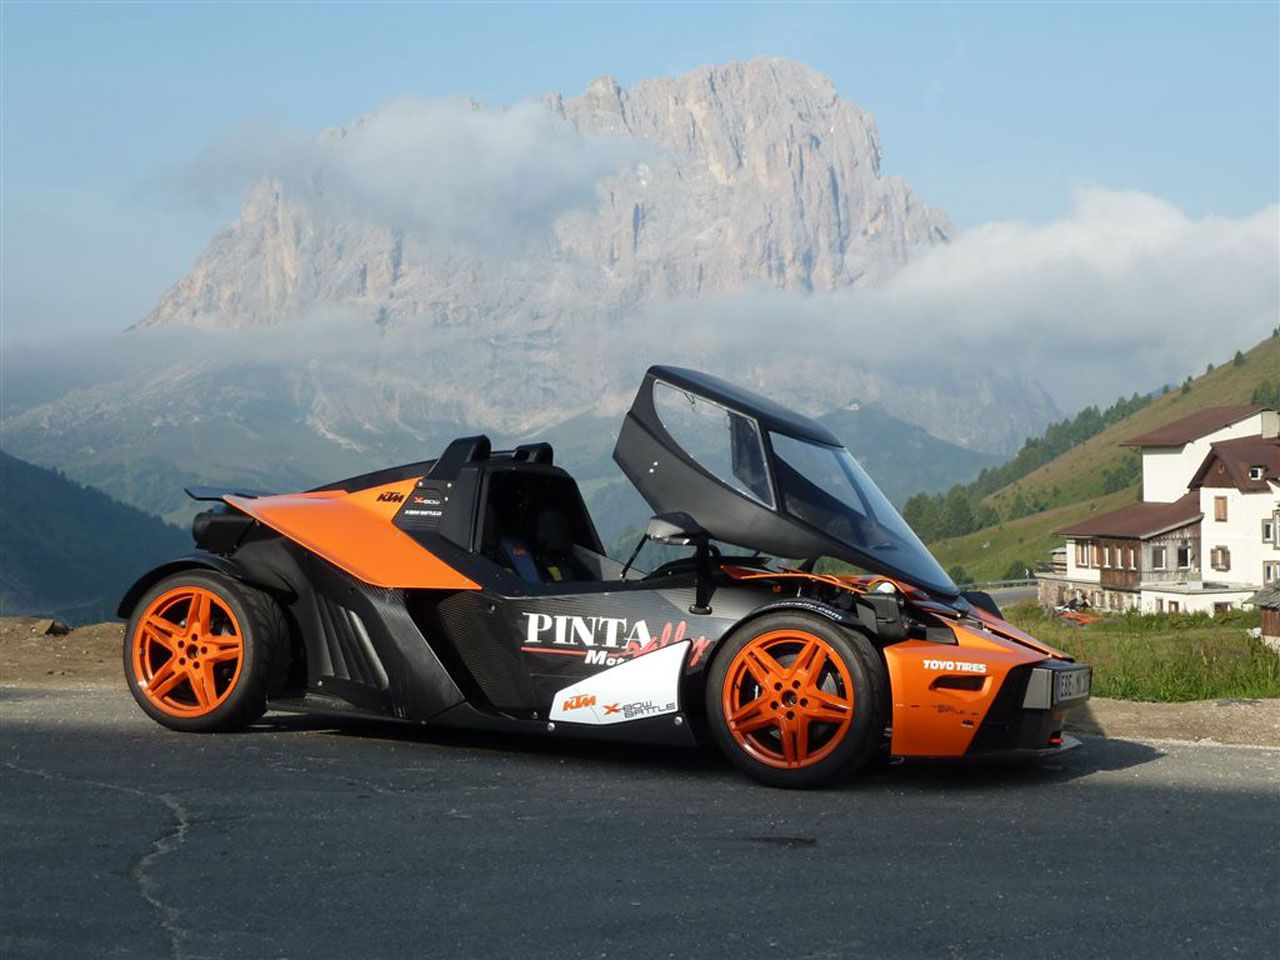 The Roadster That Ktm Crossbow For Is Going To Build There Will Be Real